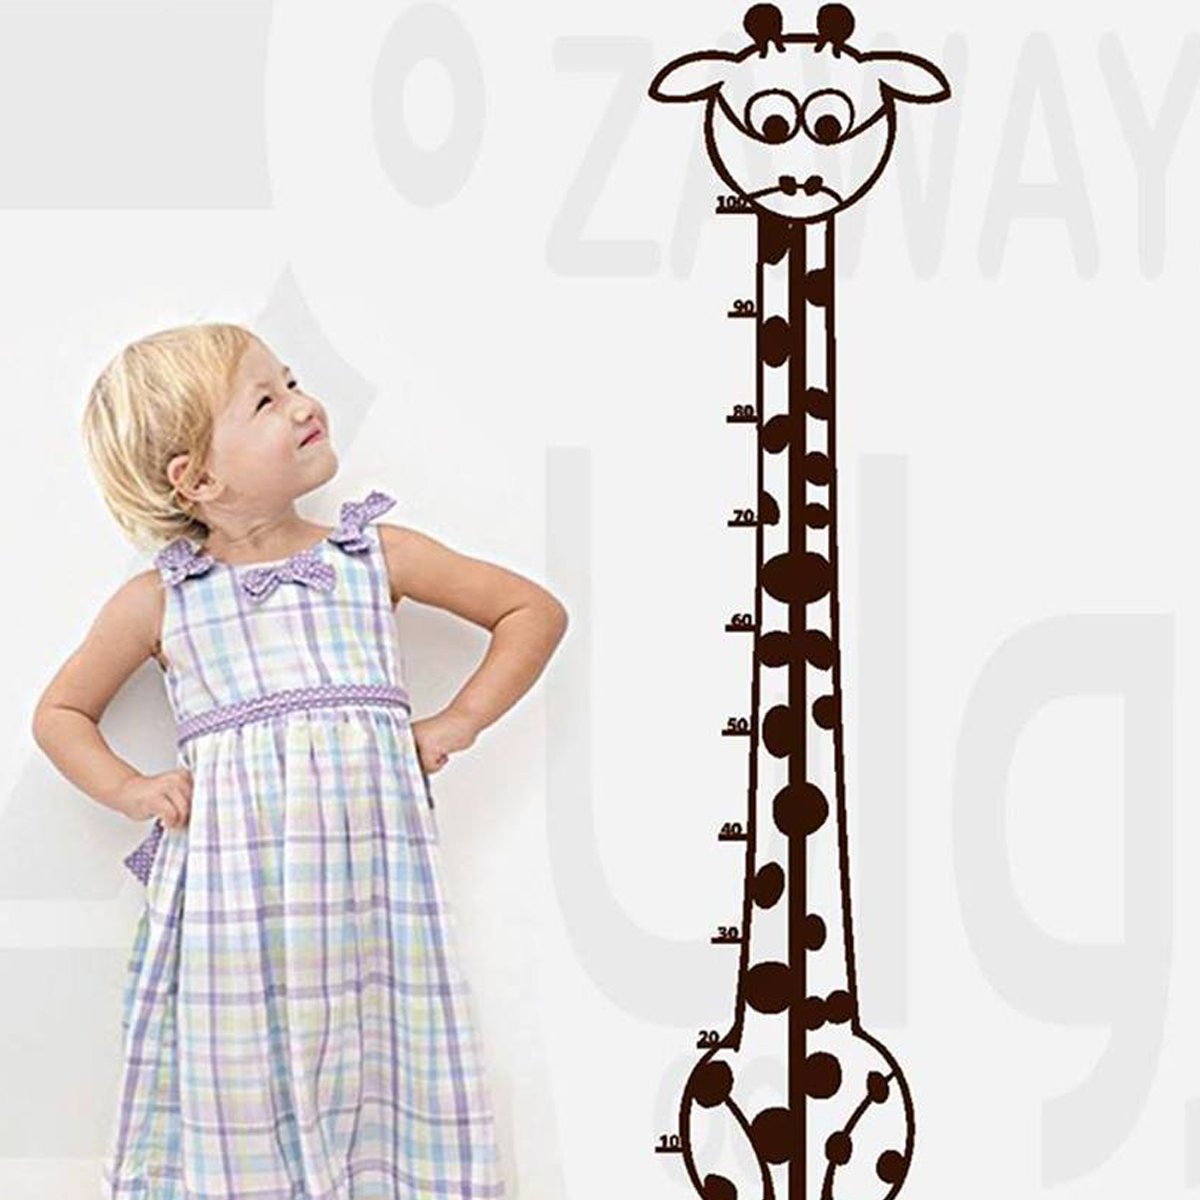 Wood Height Measure for kids